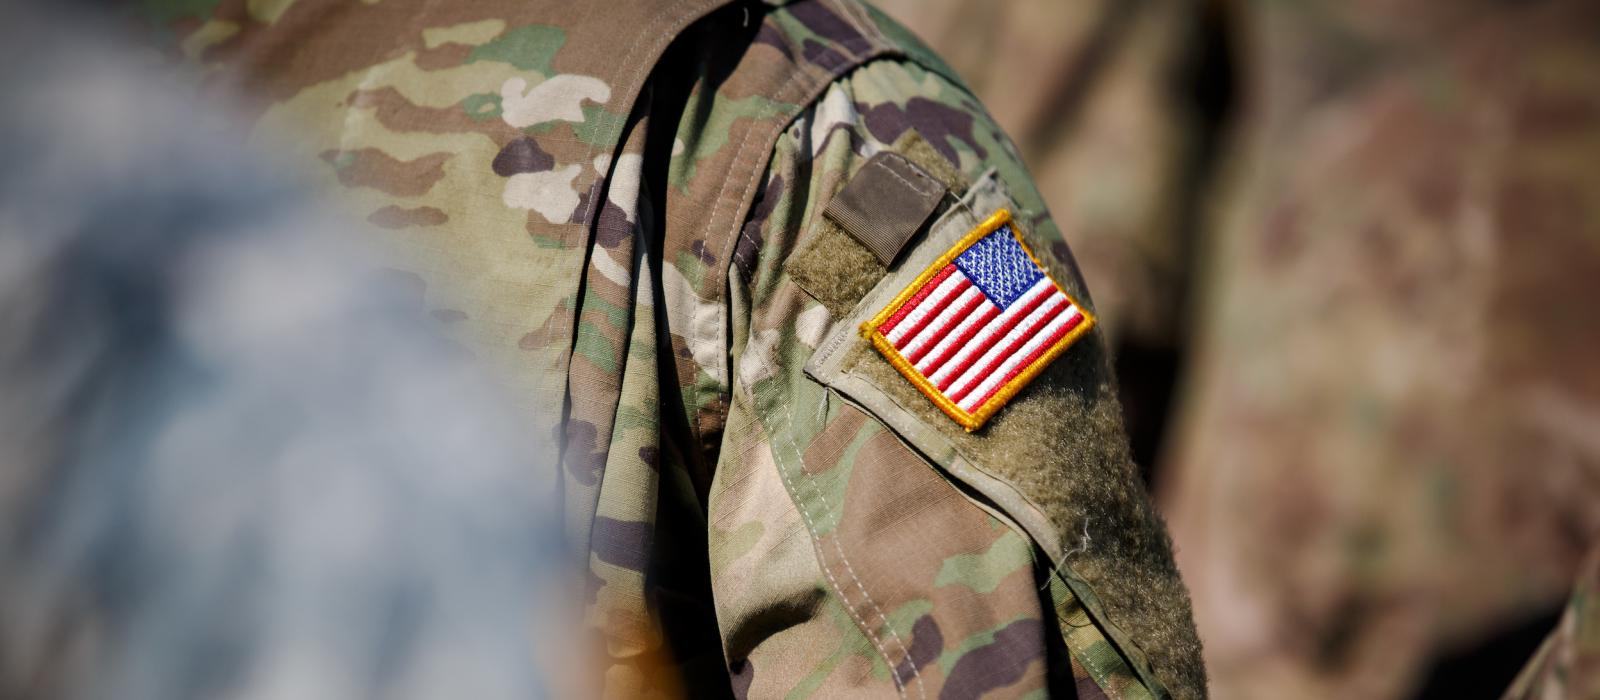 American flag on military uniform